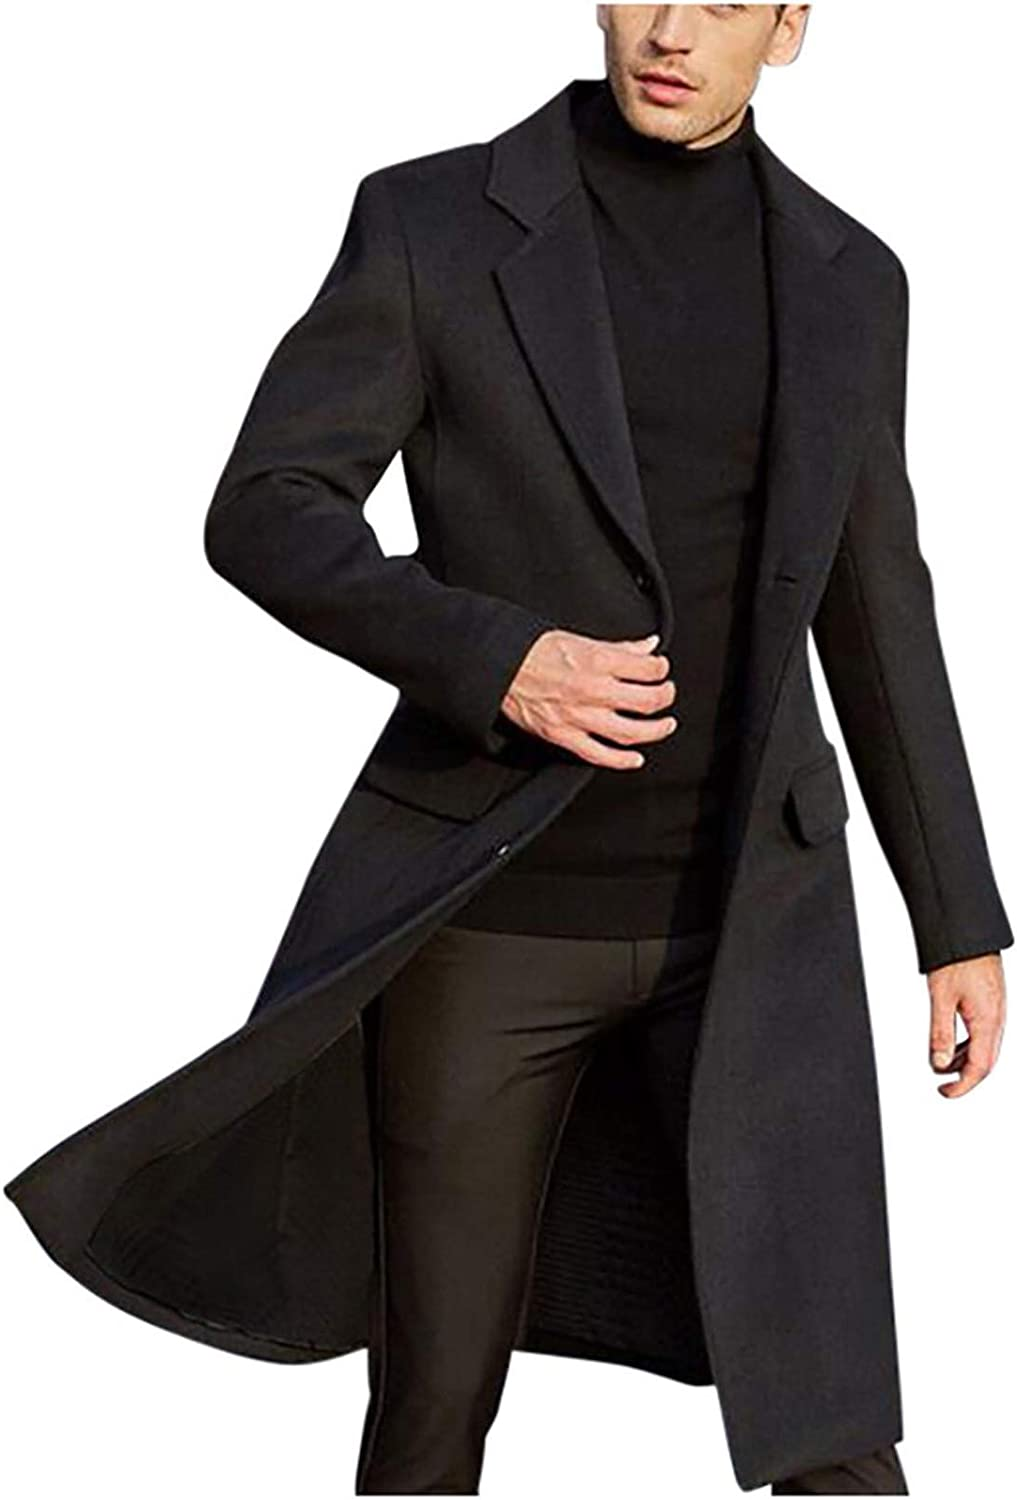 Men's Wool Blend Trench Coat Single Breasted Slim Fit Mid-Length Notched Collar Winter Overcoat Quilted Pea Coats